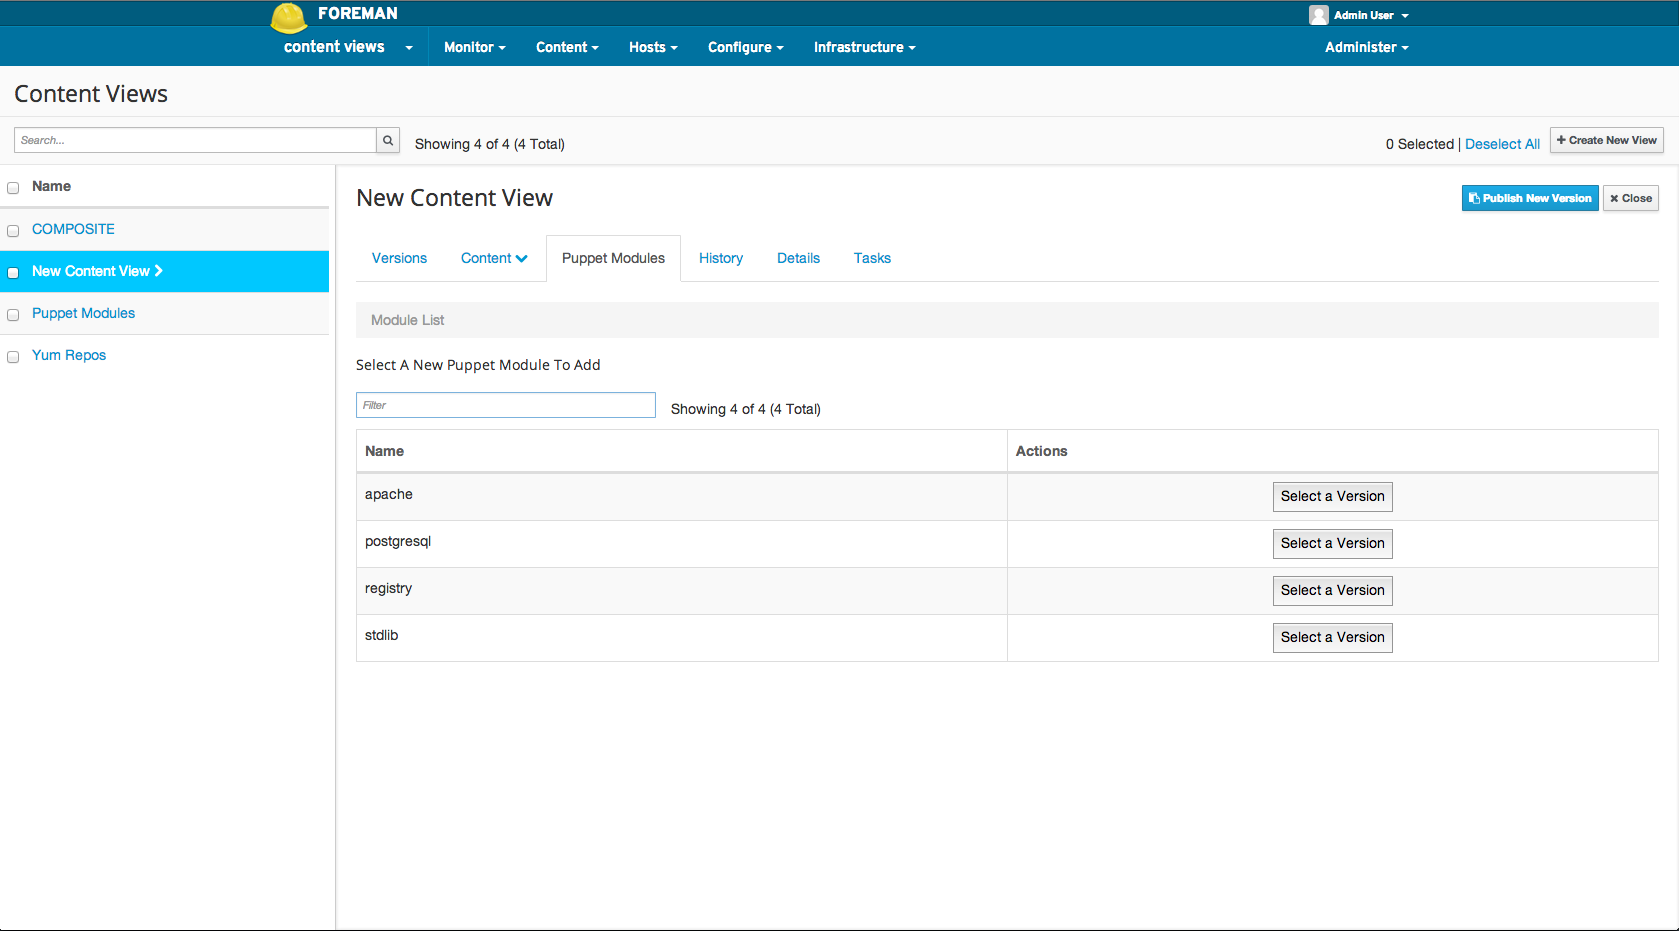 Adding a puppet module to a Content View 2